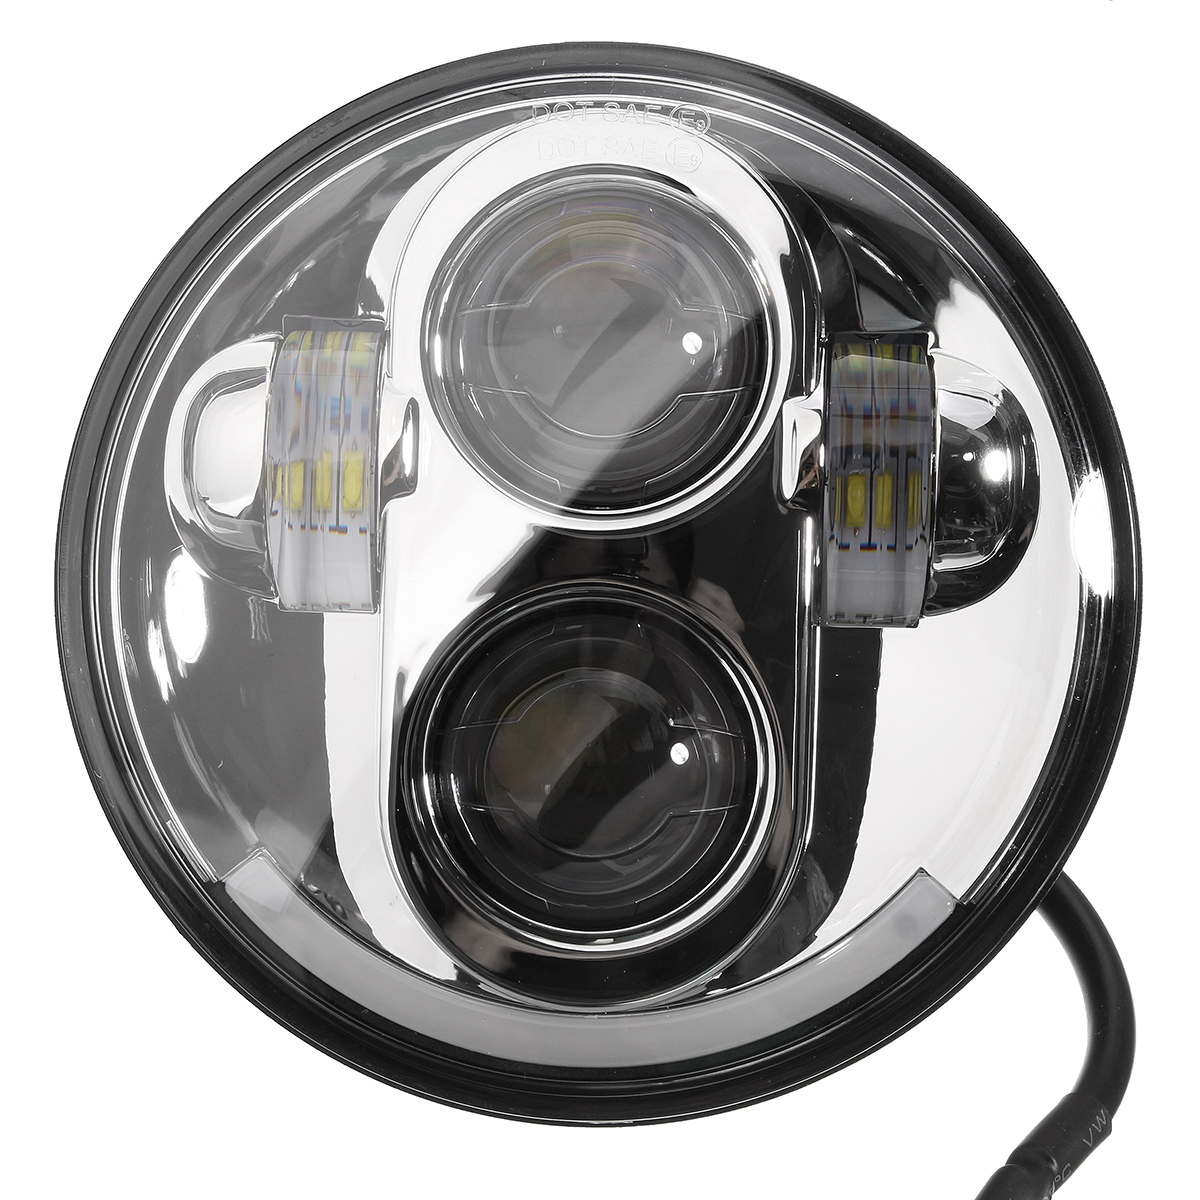 5.7inch Motorcycle Projector DRL LED Light Bulb HI/LO Beam Headlight For Harley